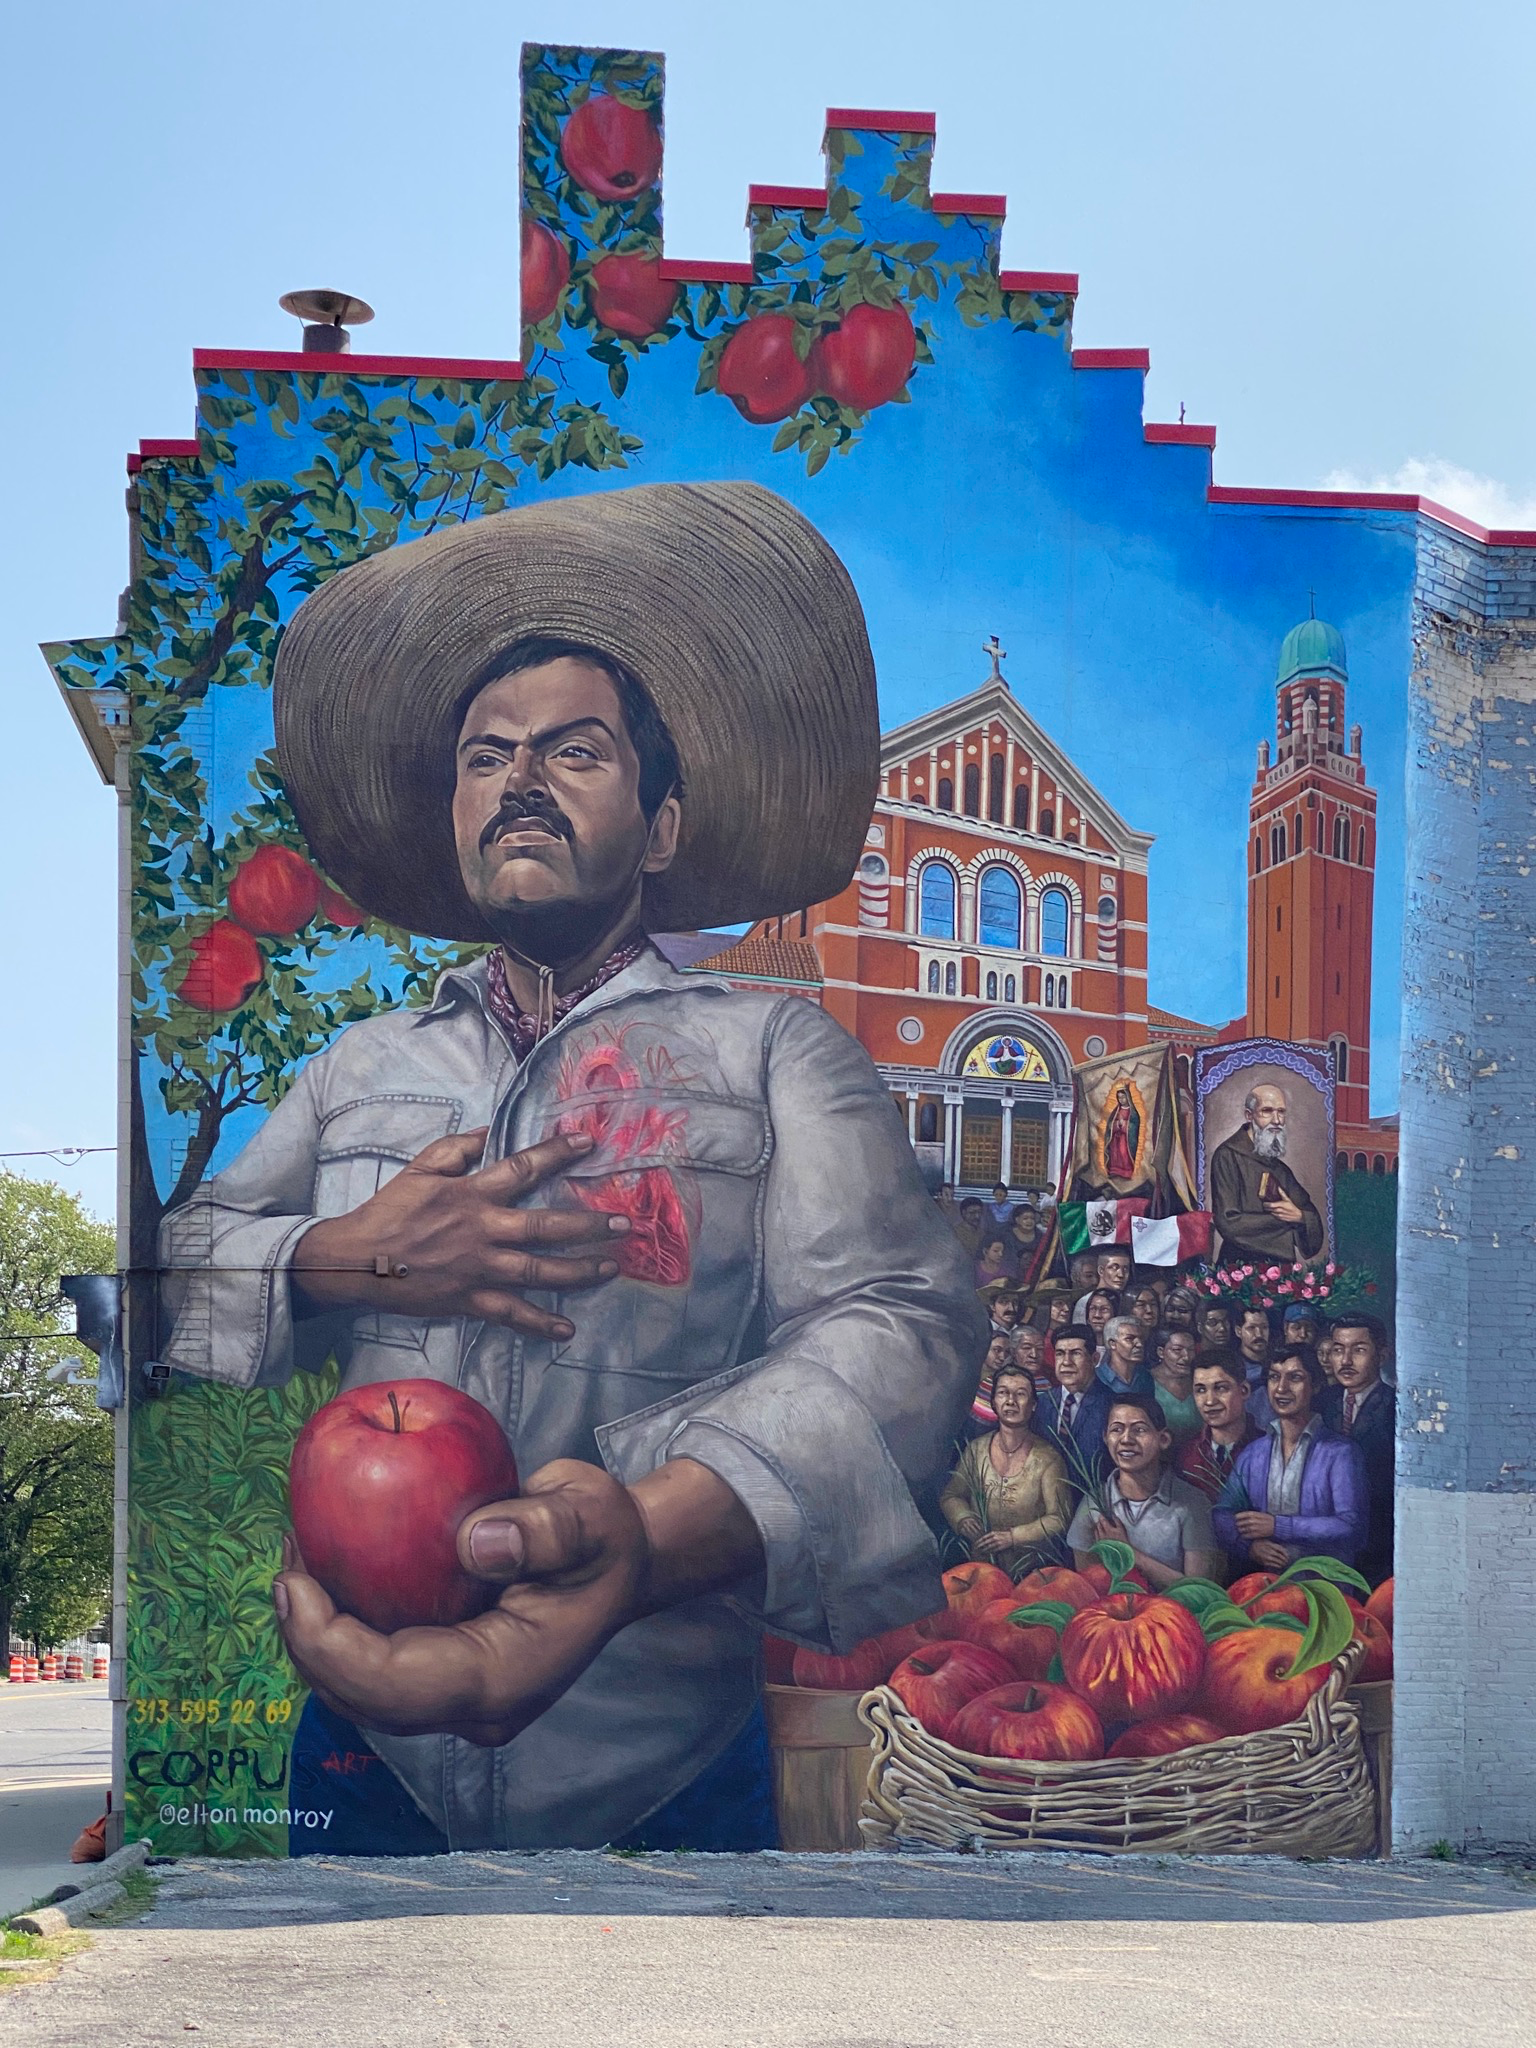 Photo of a mural of a Latinx man holding an apple, holding his hand to his heart, behind him there are portraits of community members and a church in Southwest Detroit